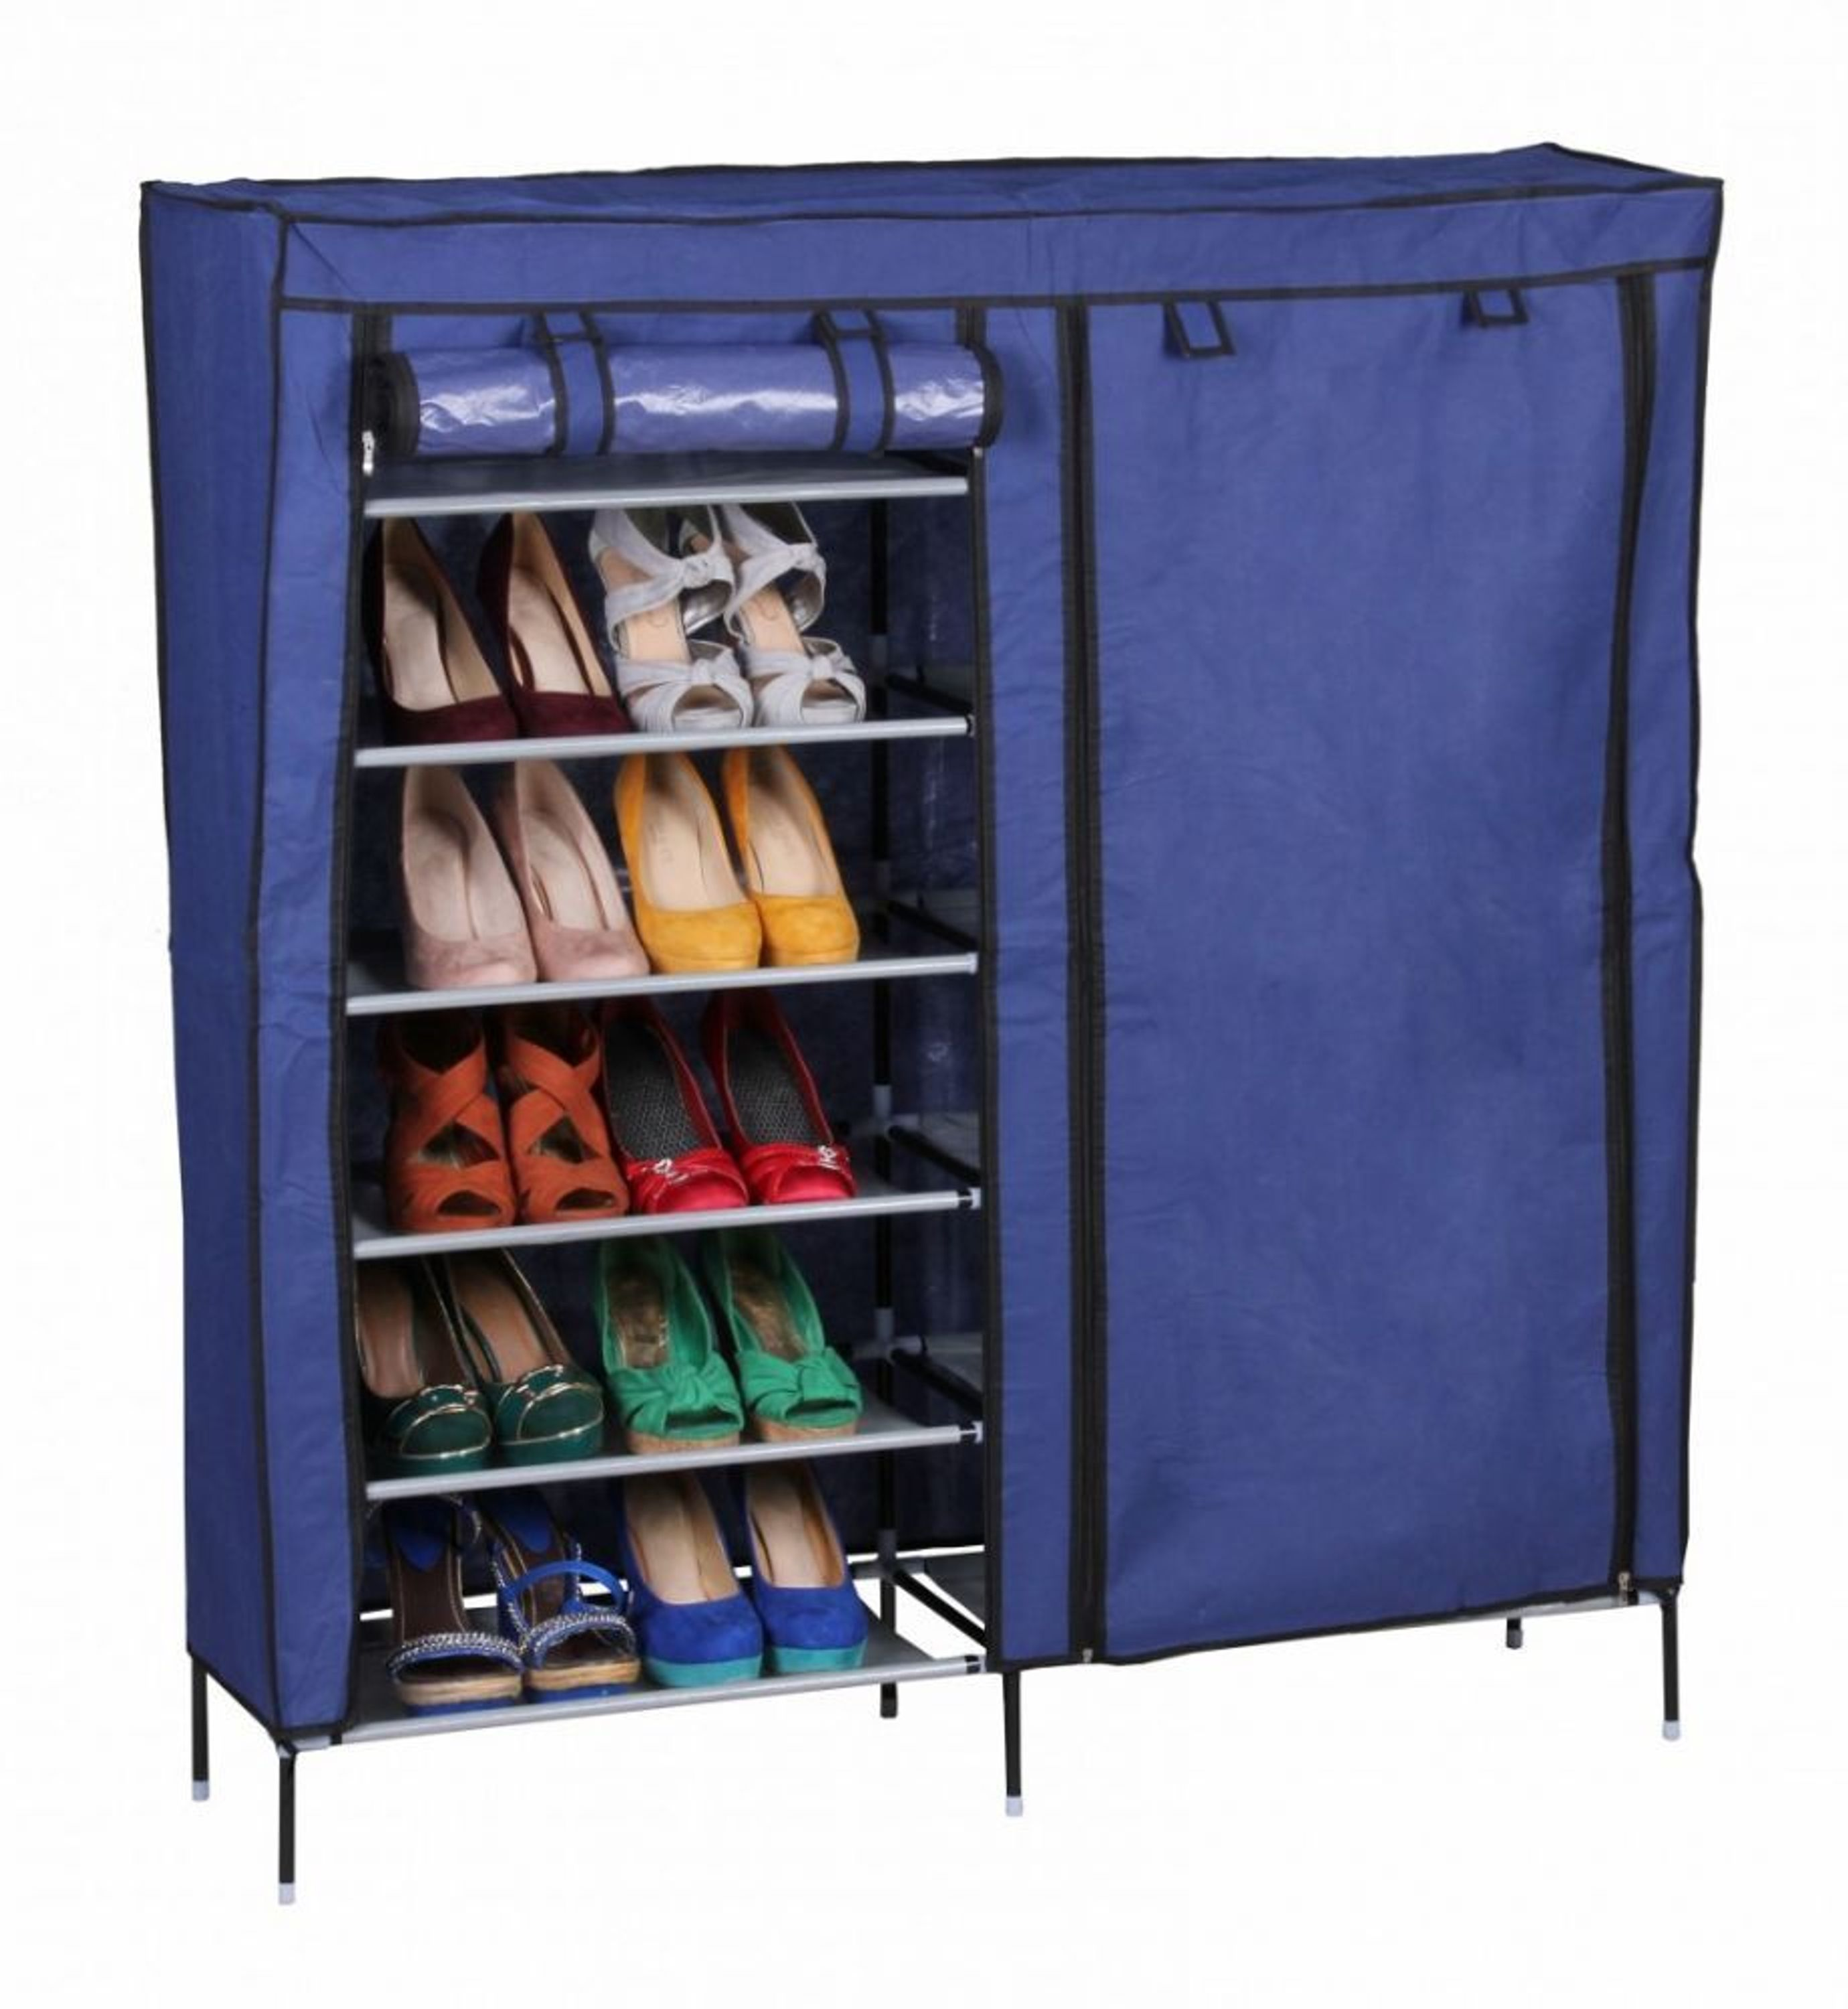 textil schuhschrank 118 x 110 x 30 cm f r 36 paar schuhe blau kaufen bei. Black Bedroom Furniture Sets. Home Design Ideas